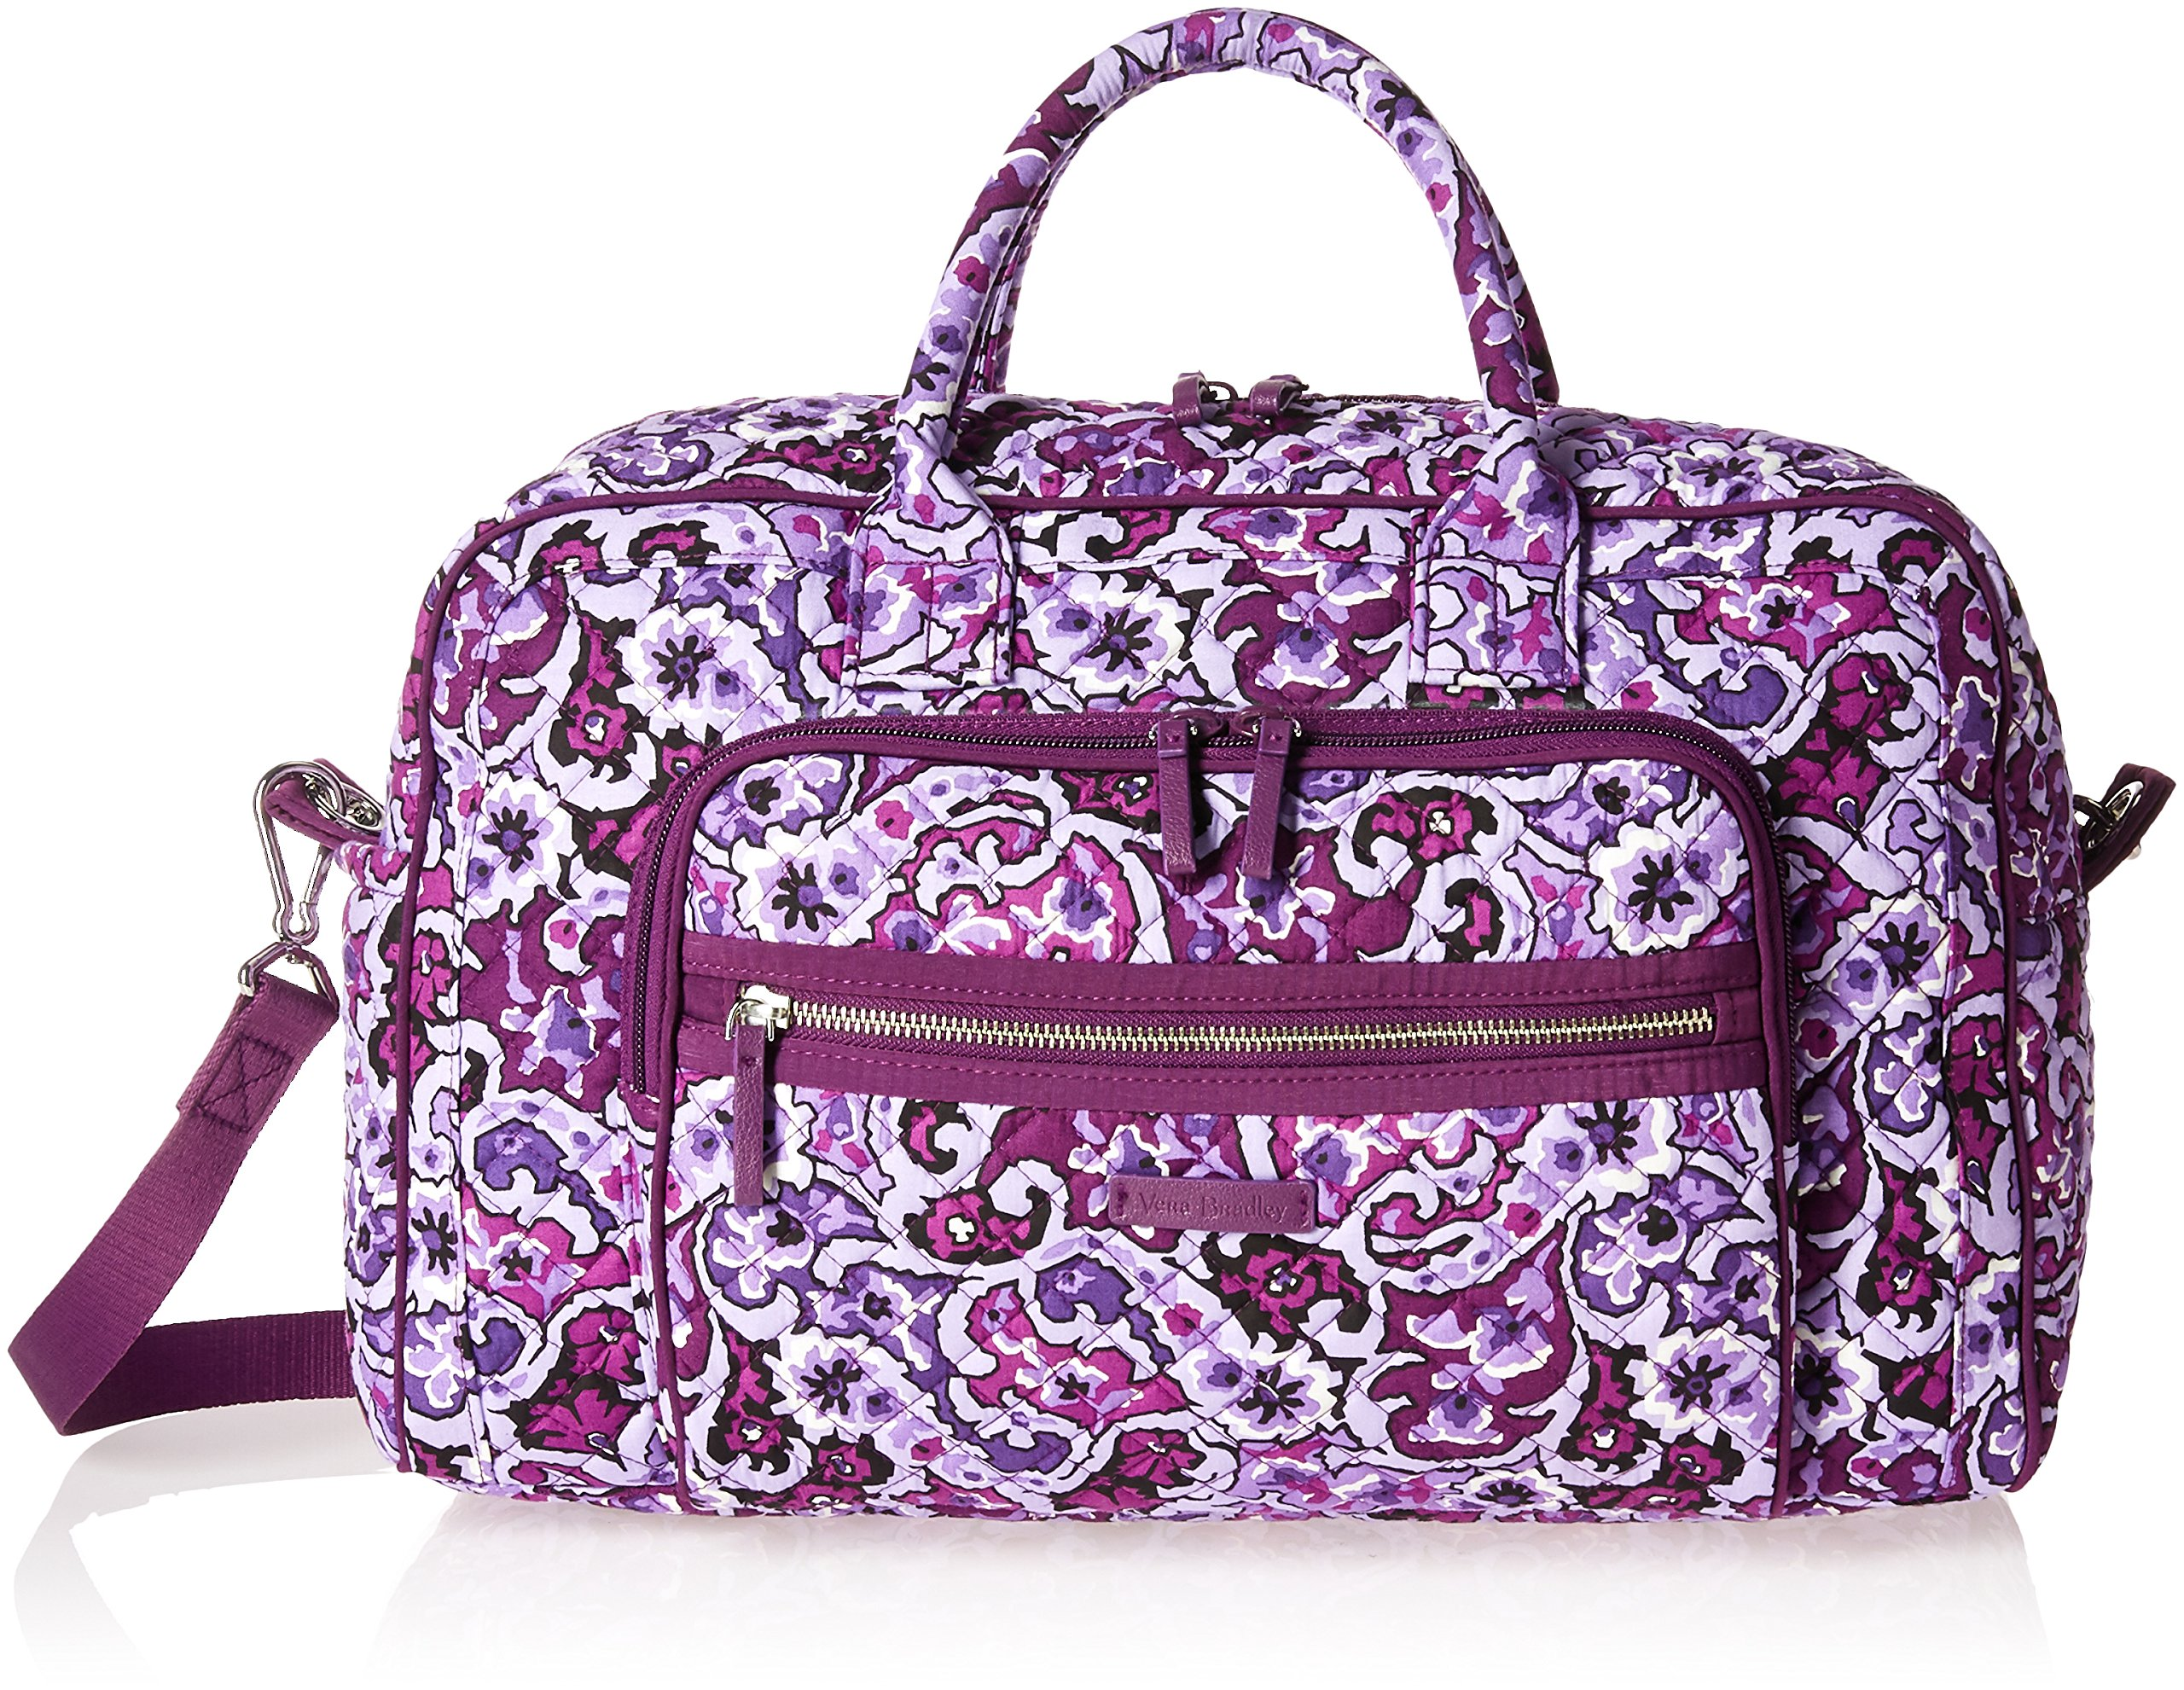 Vera Bradley Women's Iconic Compact Weekender Travel Bag-Signature, Lilac Paisley